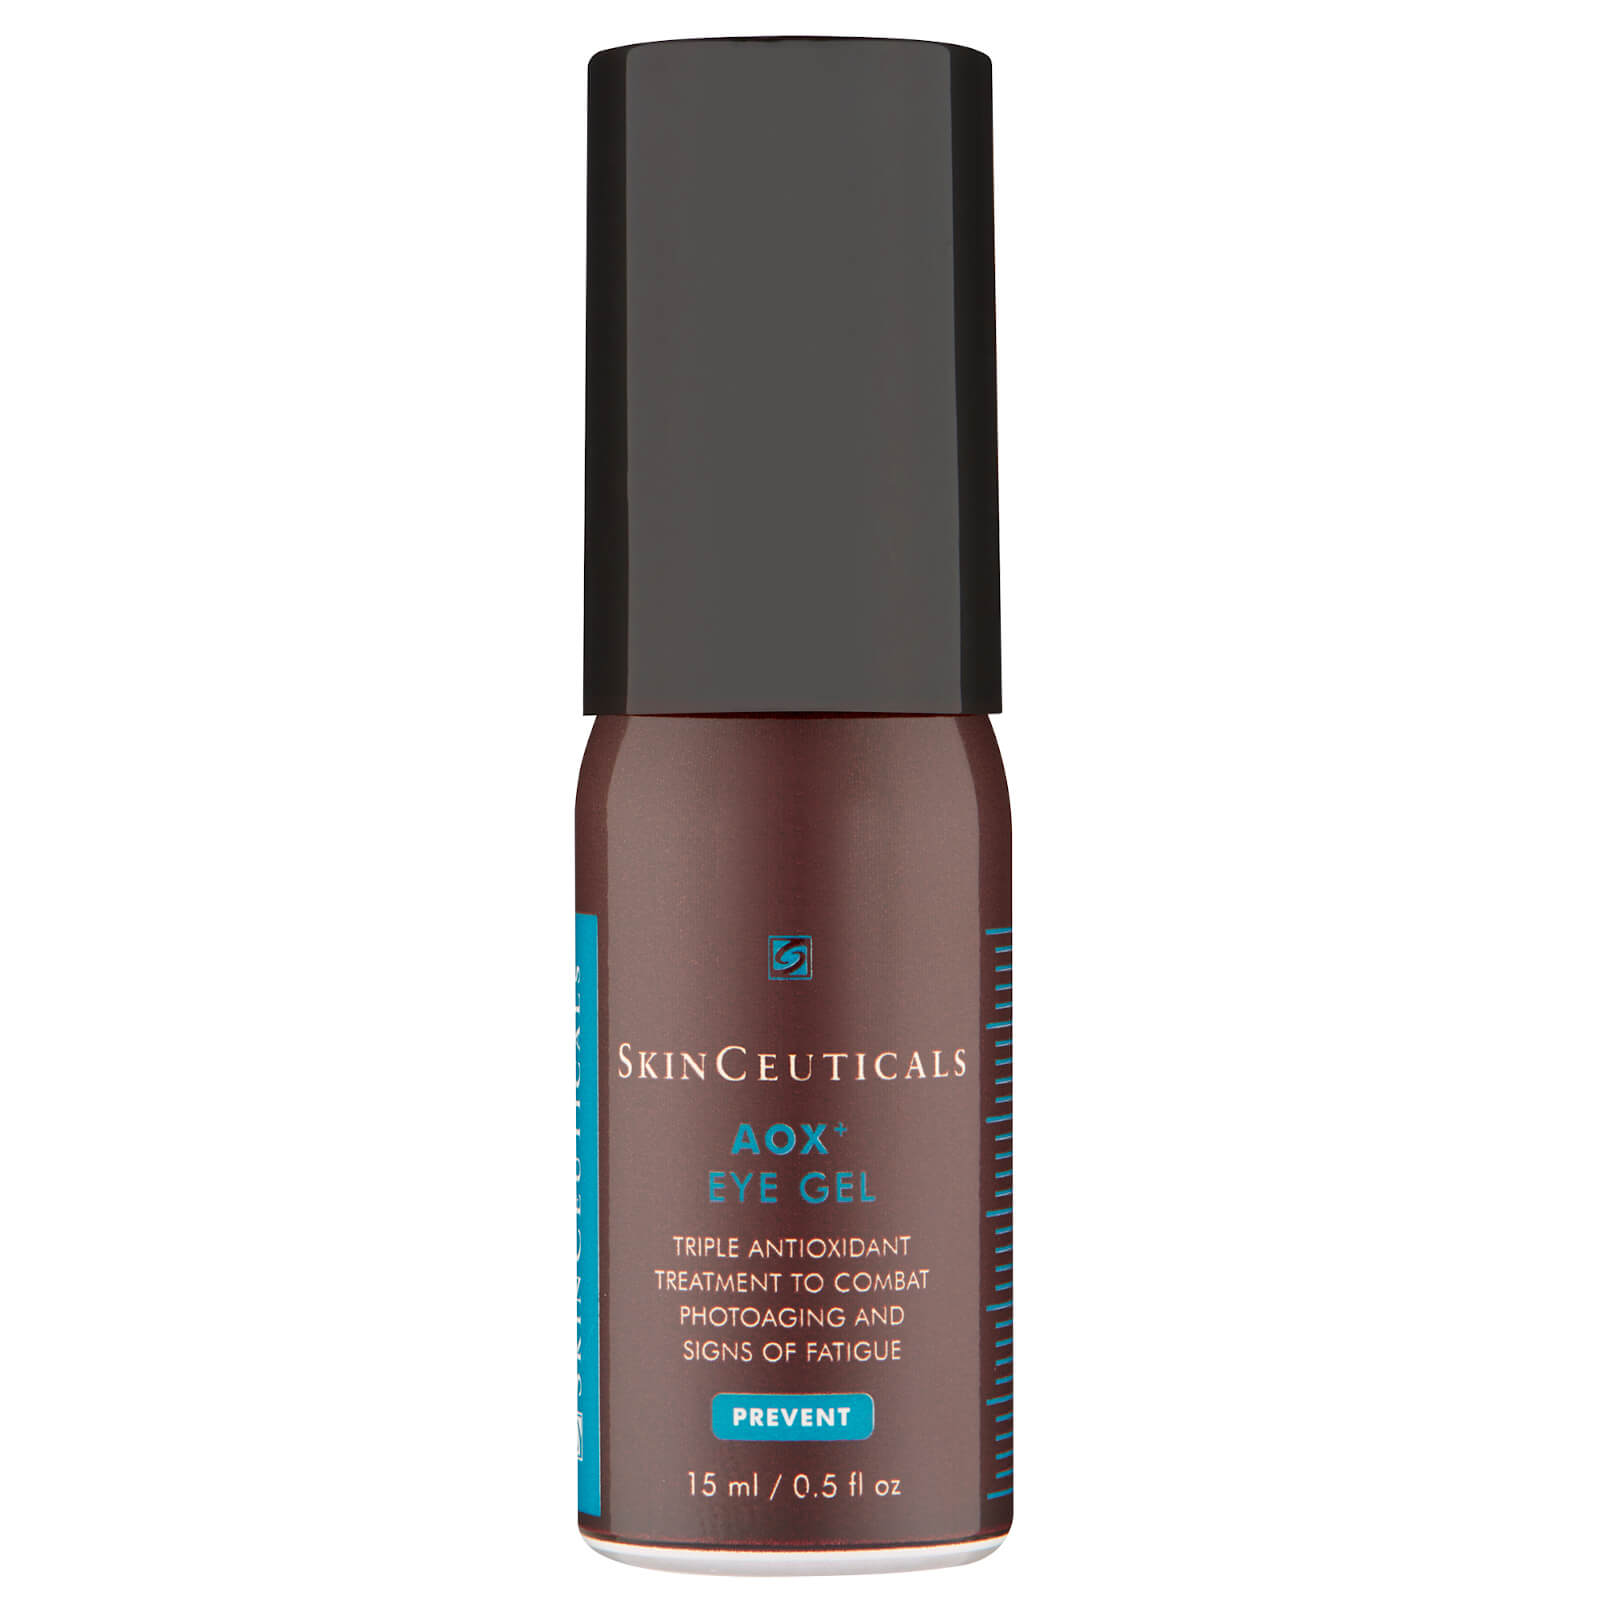 Skin Ceuticals – AOX+ Eye Gel 15 ml